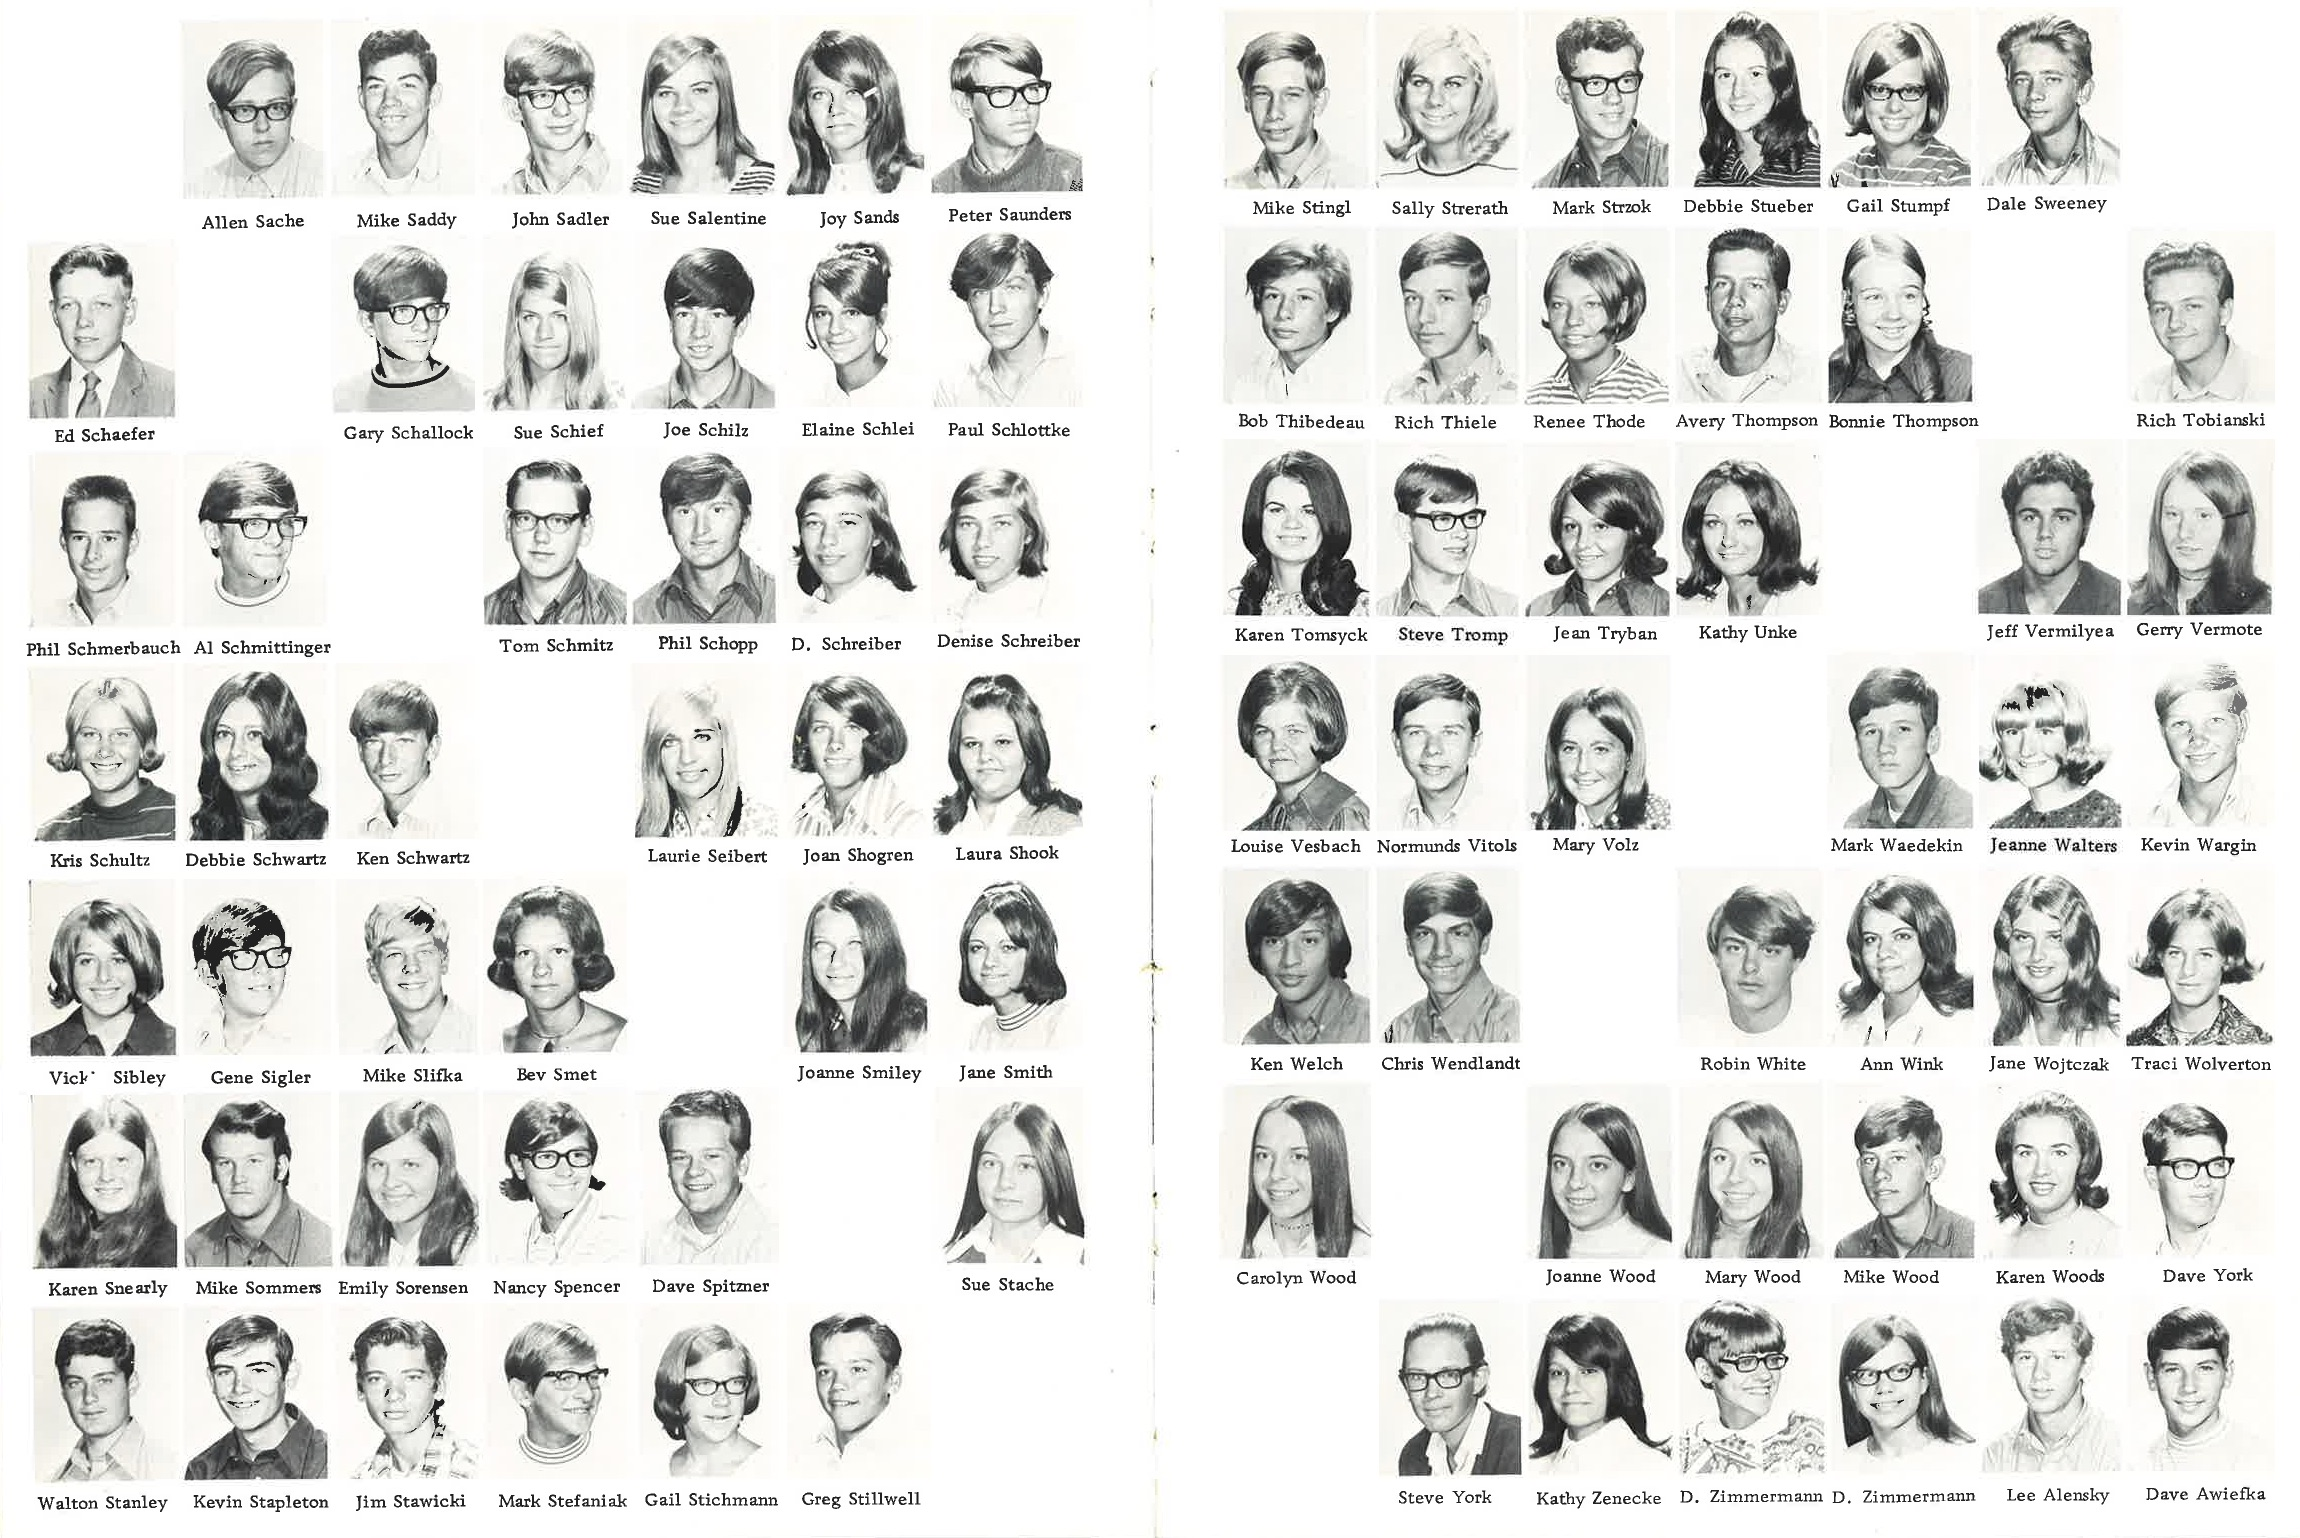 1971_Yearbook_46-47.jpg